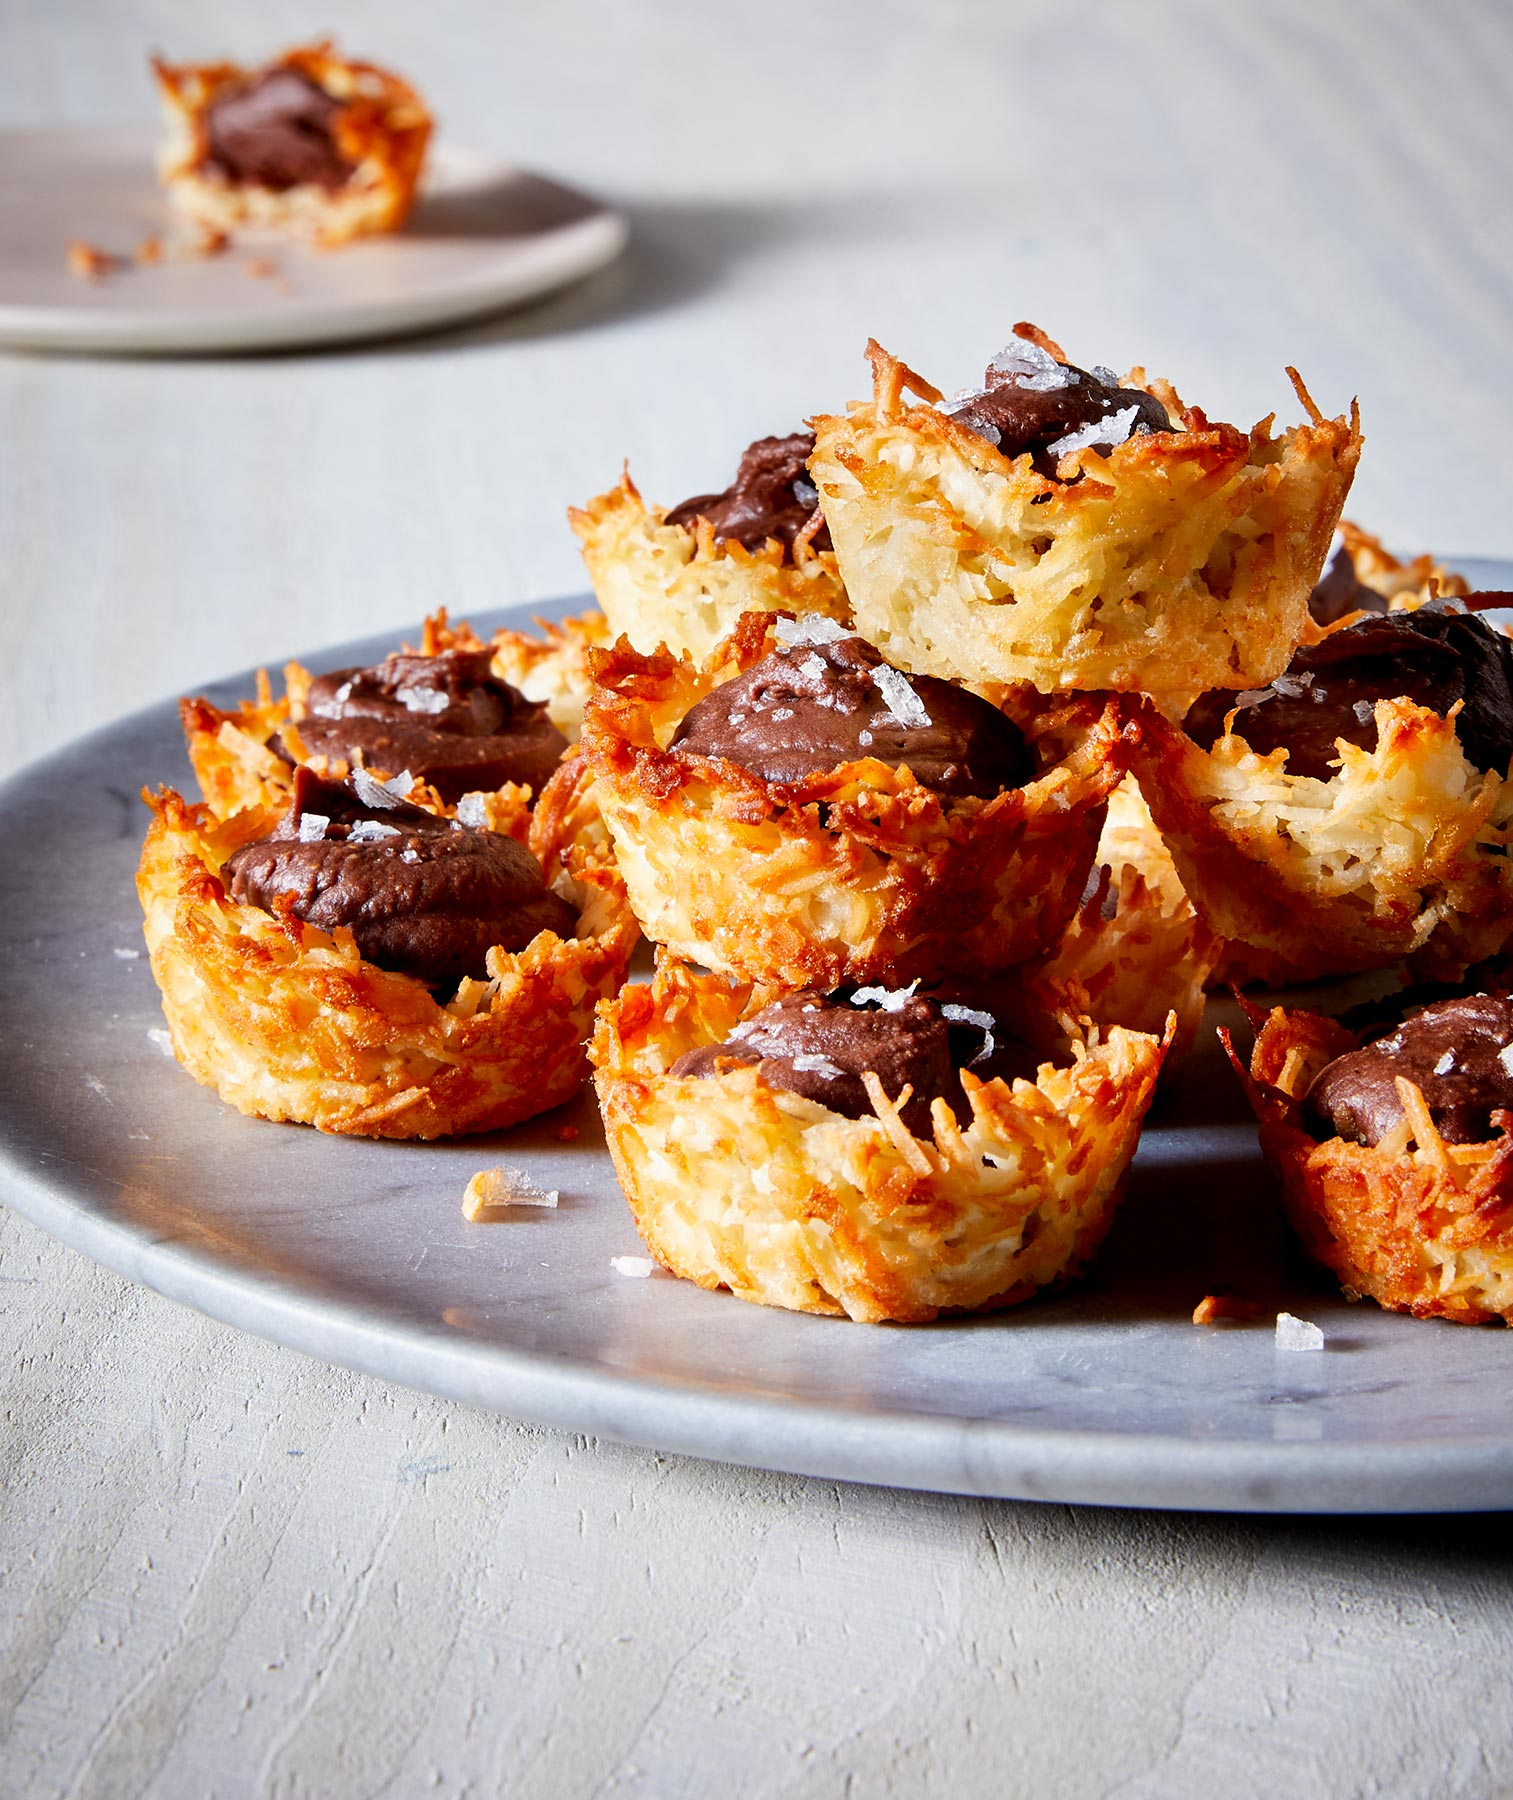 Healthy Desserts Recipes: Dark Chocolate Coconut Tartlets